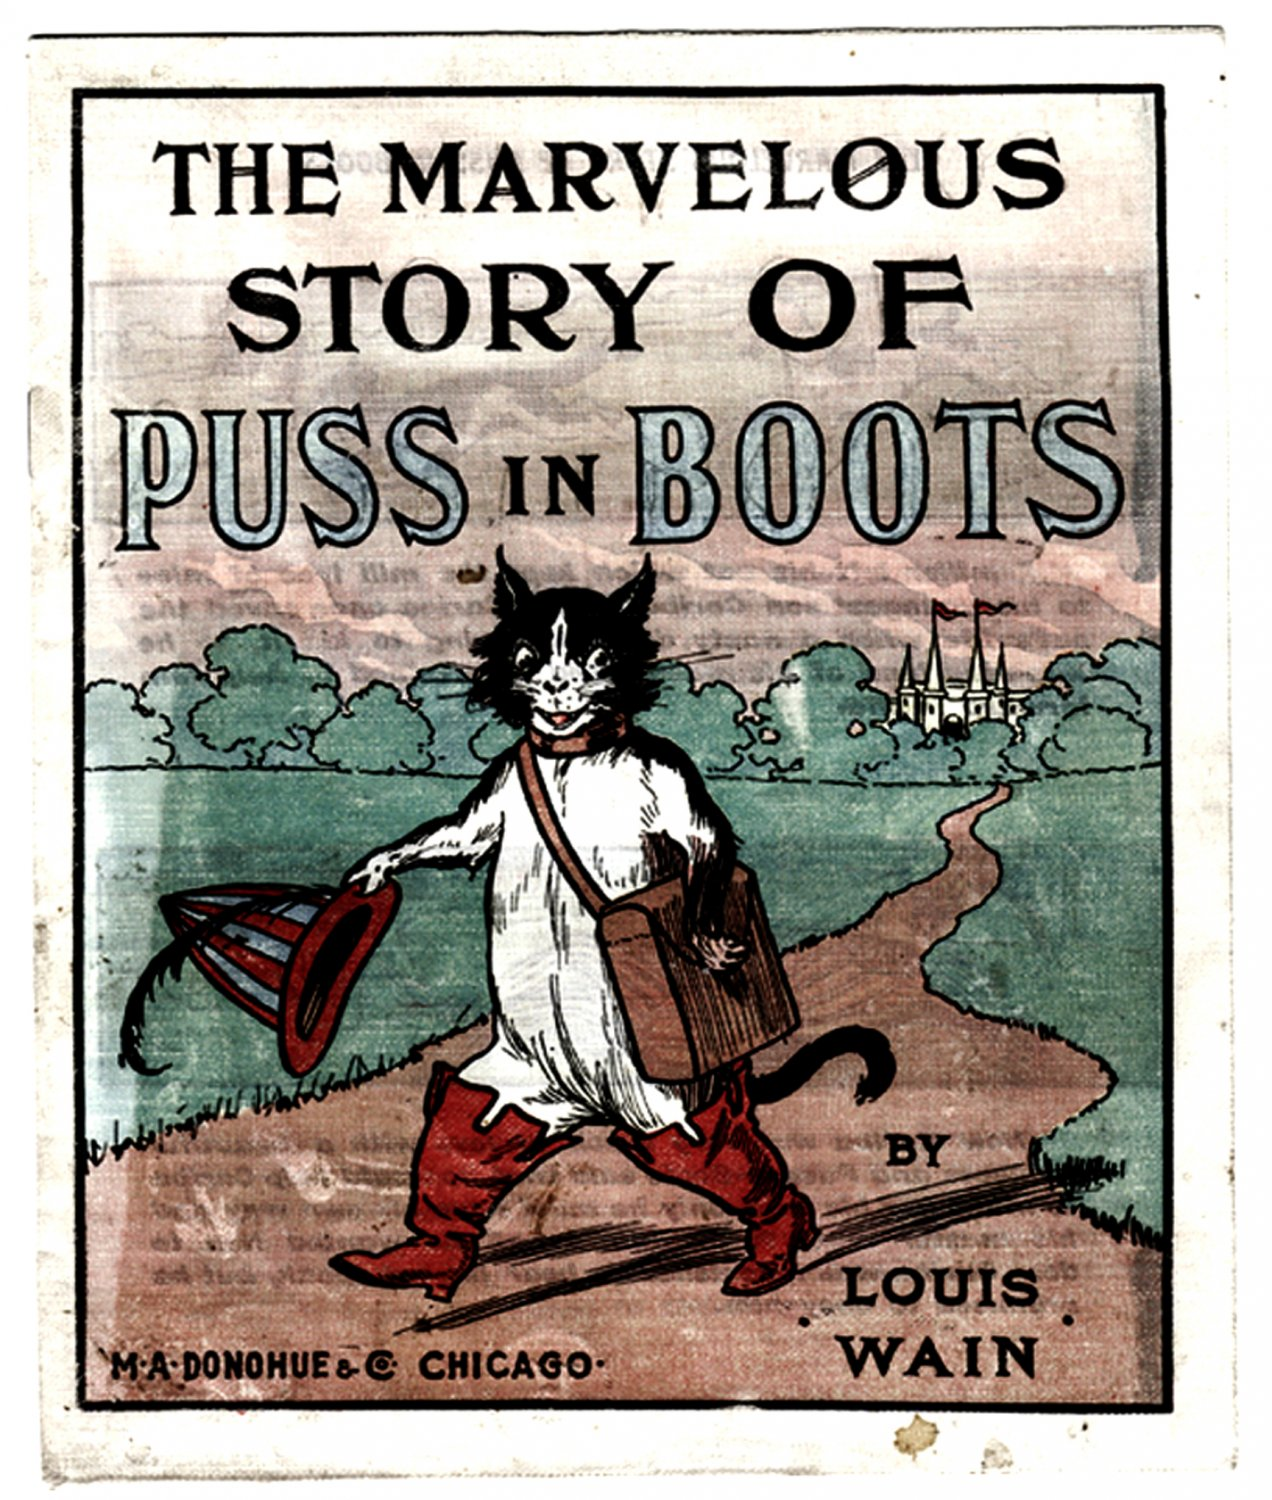 Louis Wain The Marvellous Story of Puss in Boots circa 1904